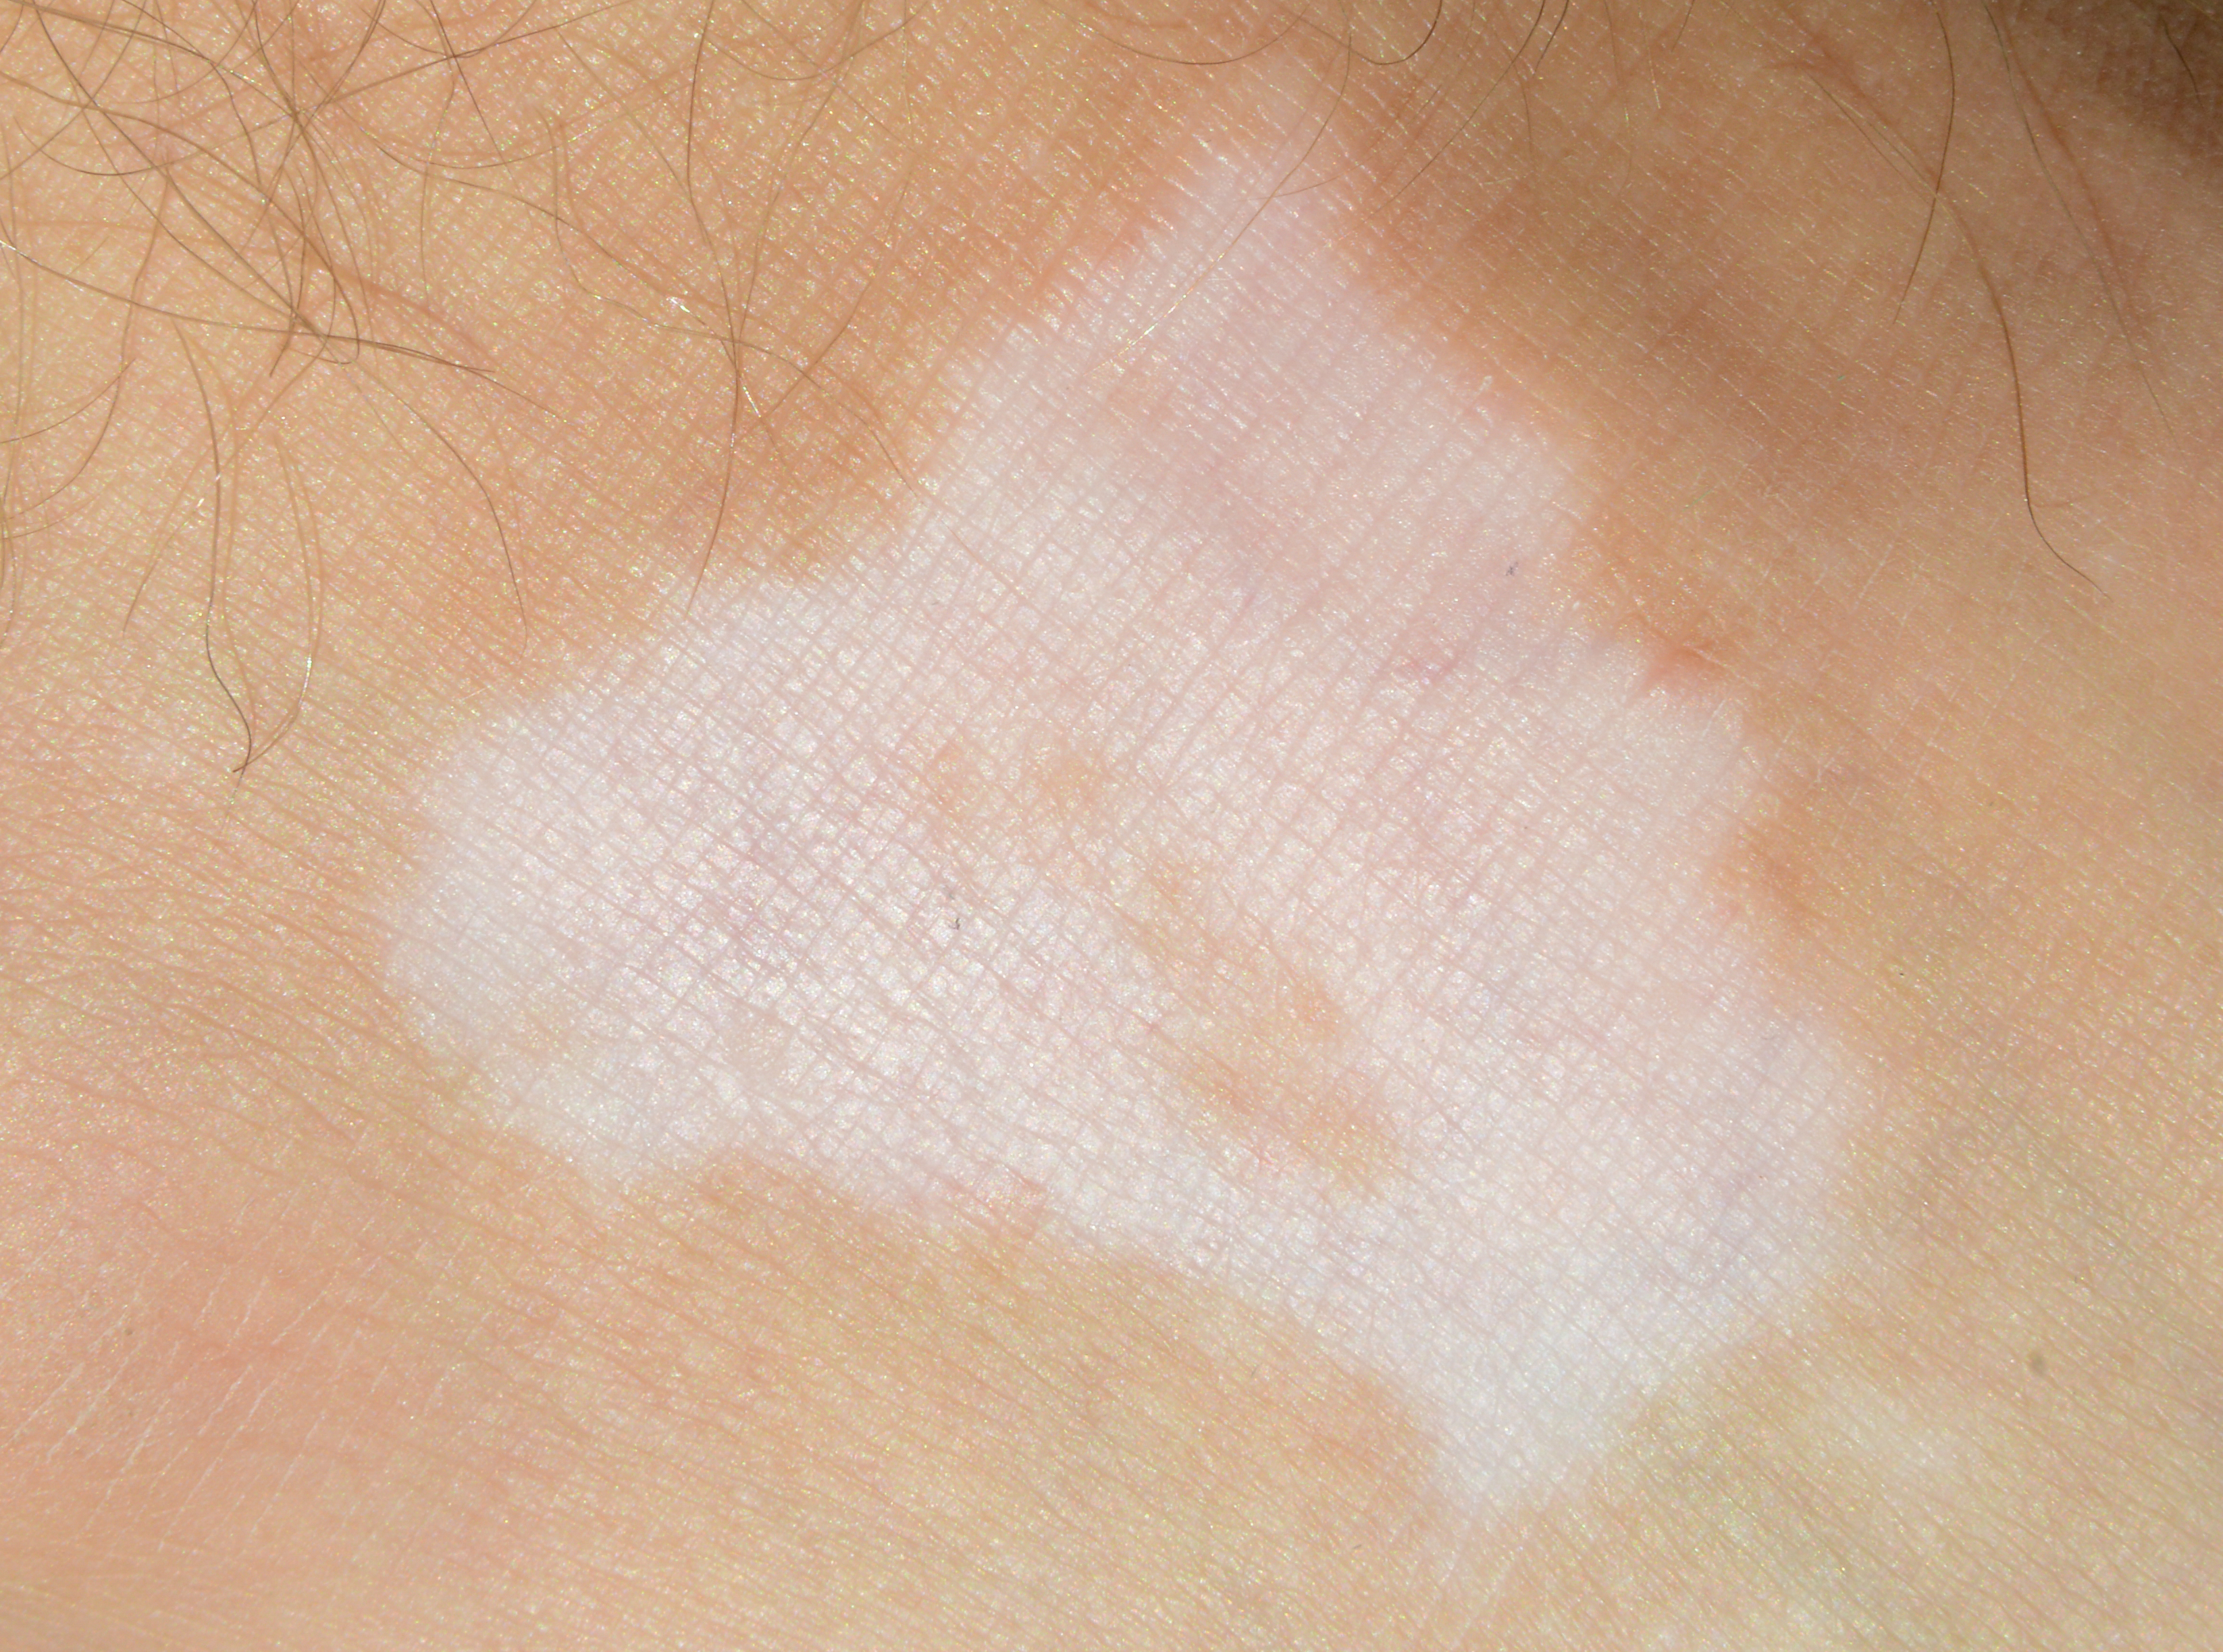 loss of skin pigmentation due to immunotherapy